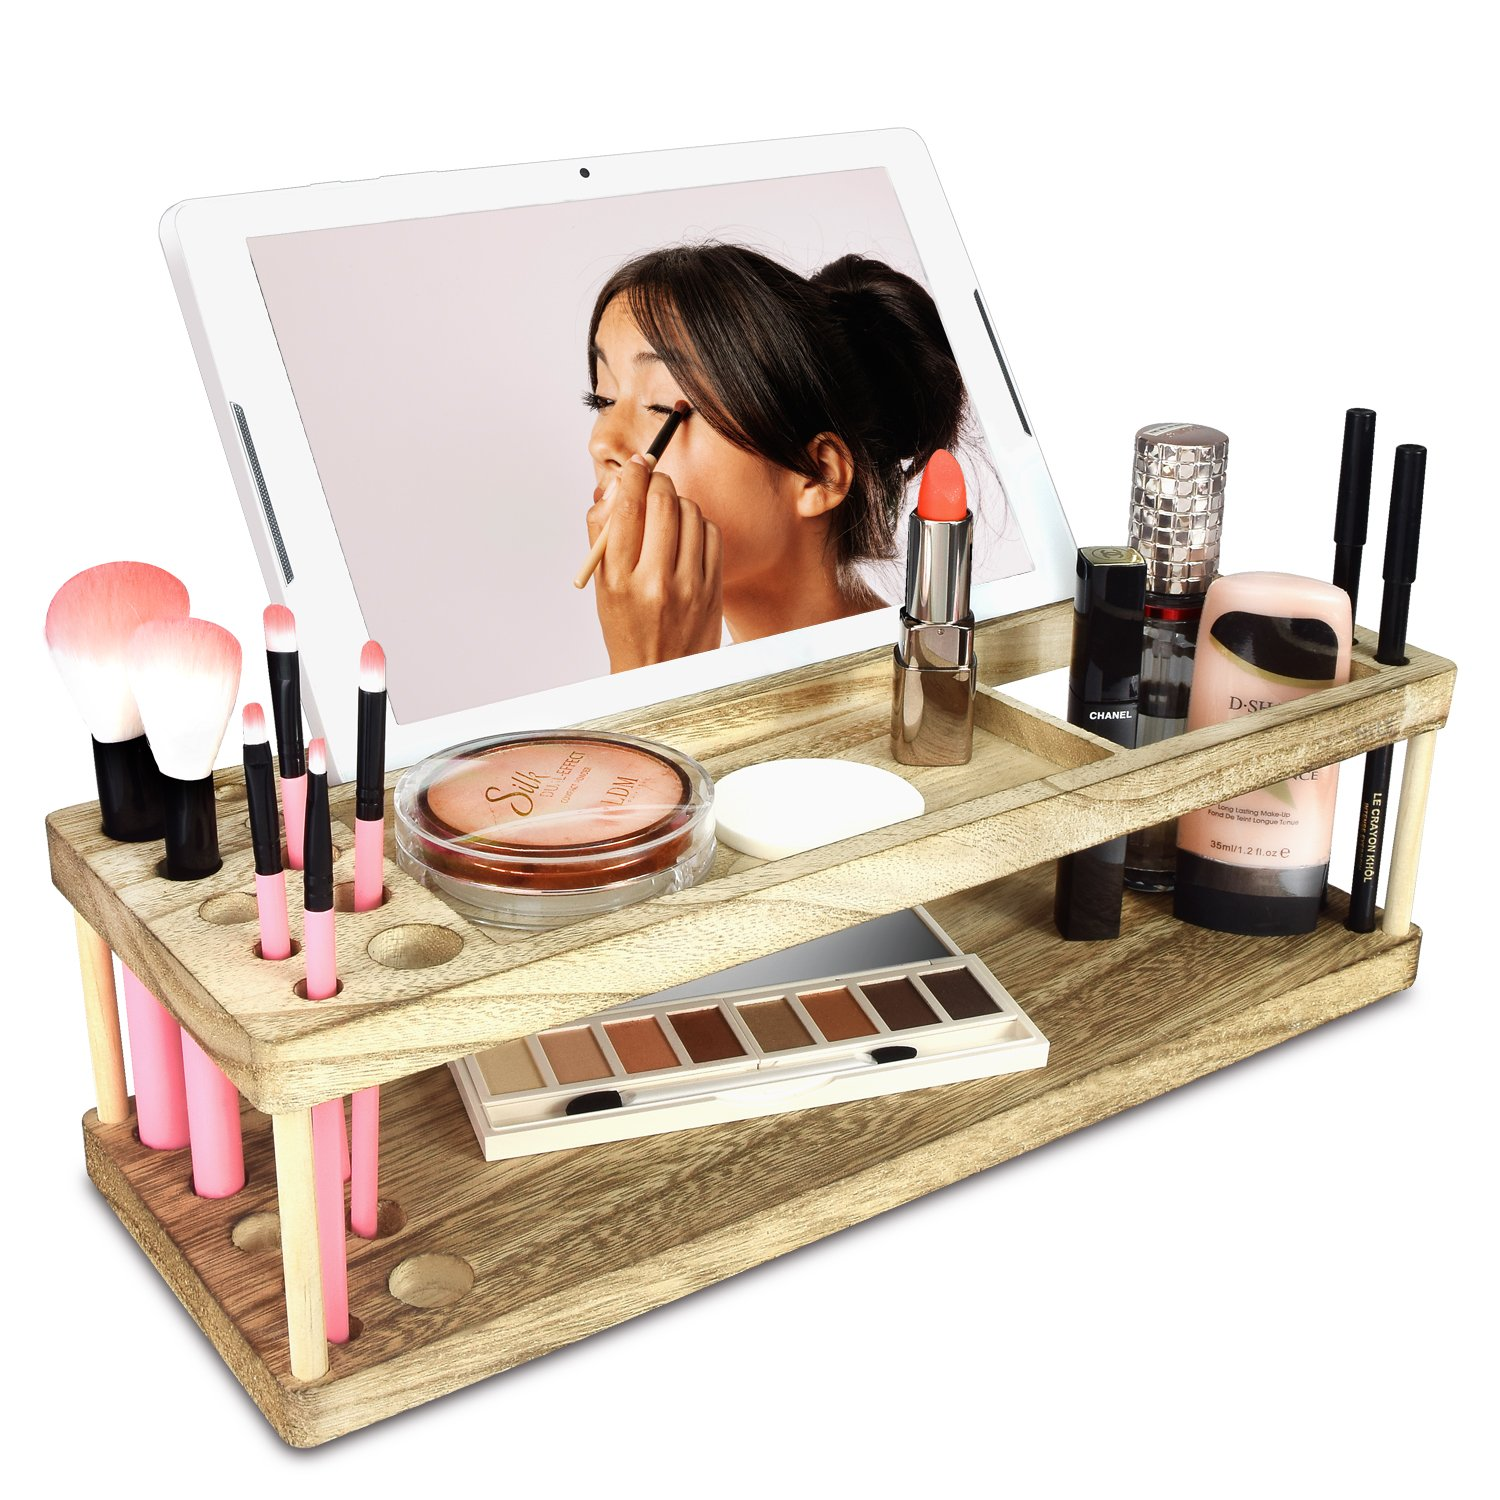 Ikee Design Wooden Makeup Storage Organizer with Pen Holder and Mobile Phone Holder